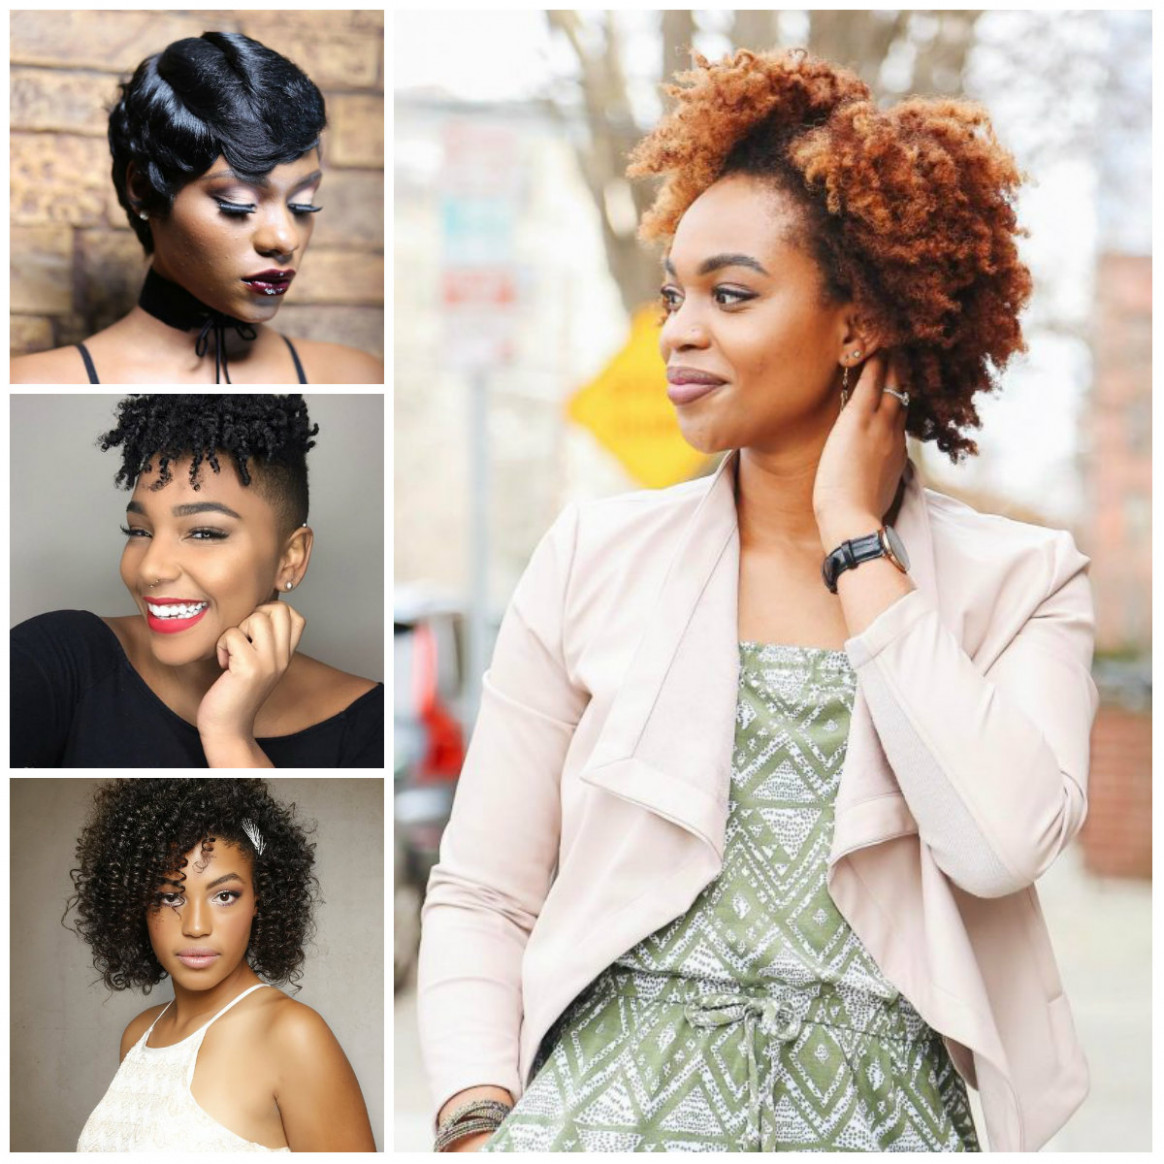 New Short Hairstyles for Black Women in 12  12 Haircuts  - Short Hairstyles 2018 Black